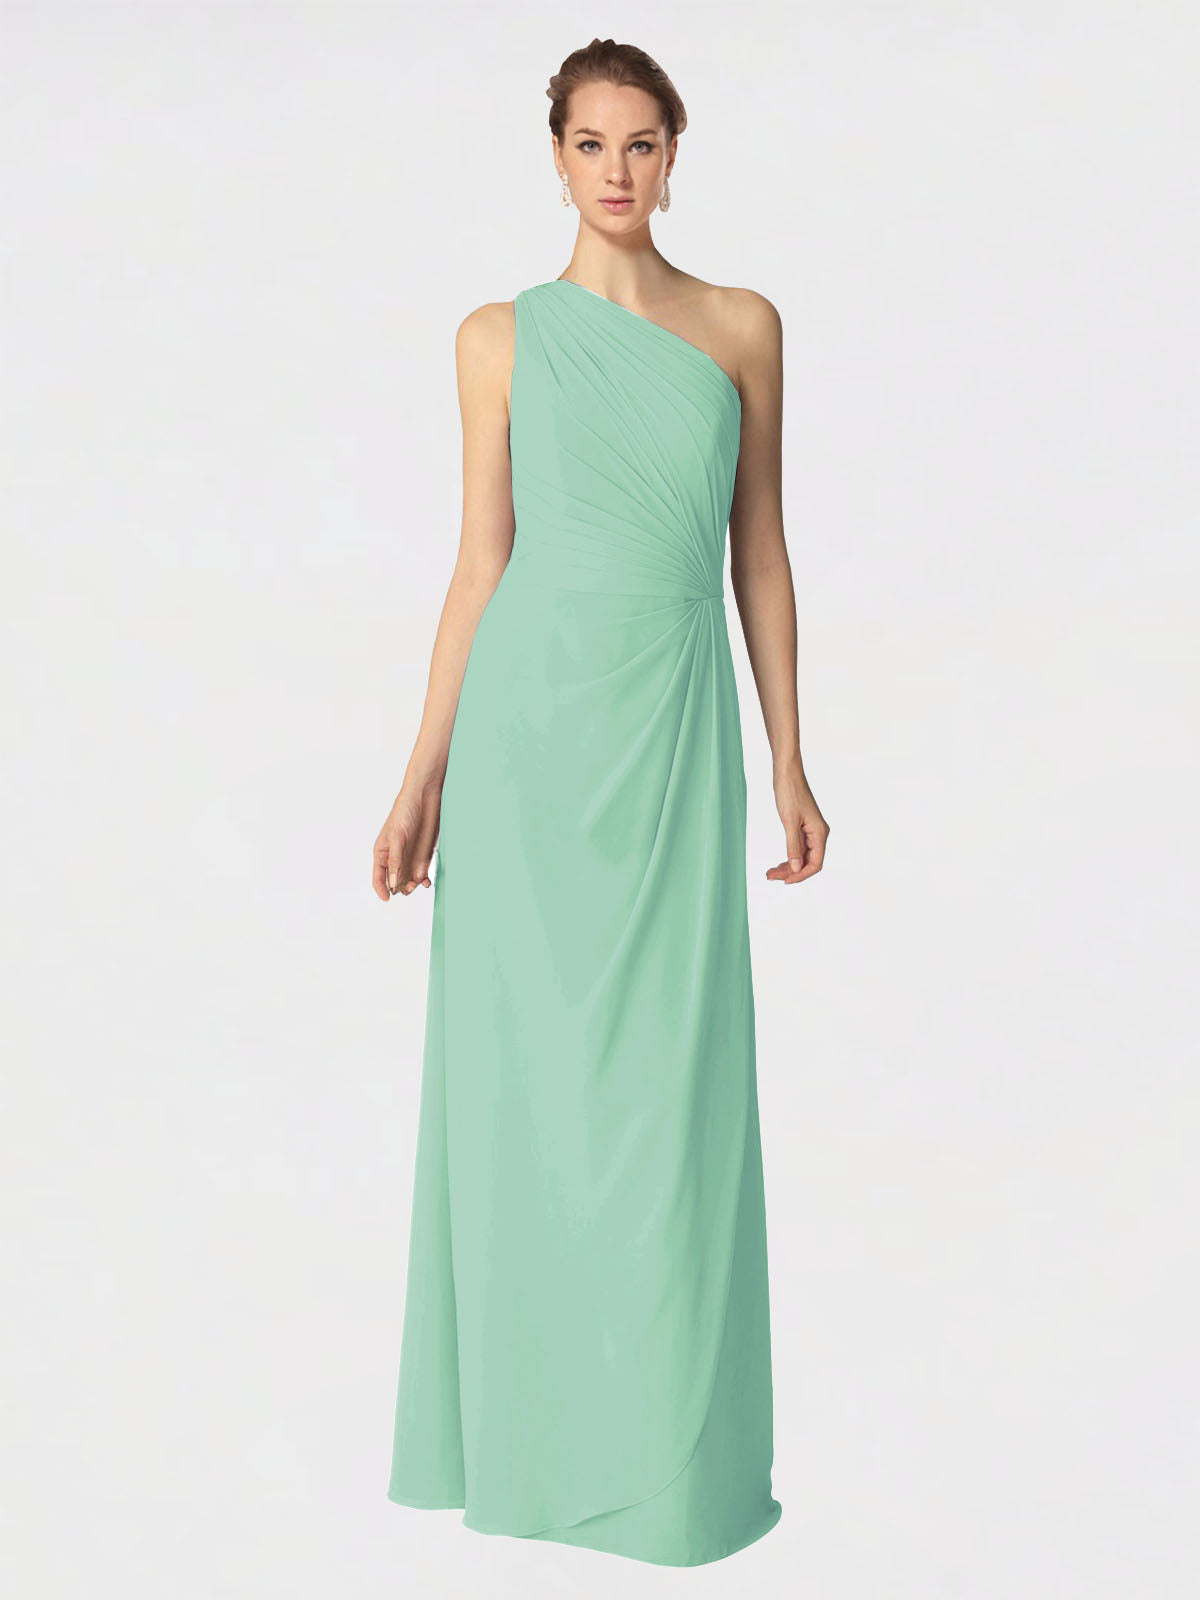 Long A-Line One Shoulder Sleeveless Mint Green Chiffon Bridesmaid Dress Aurora